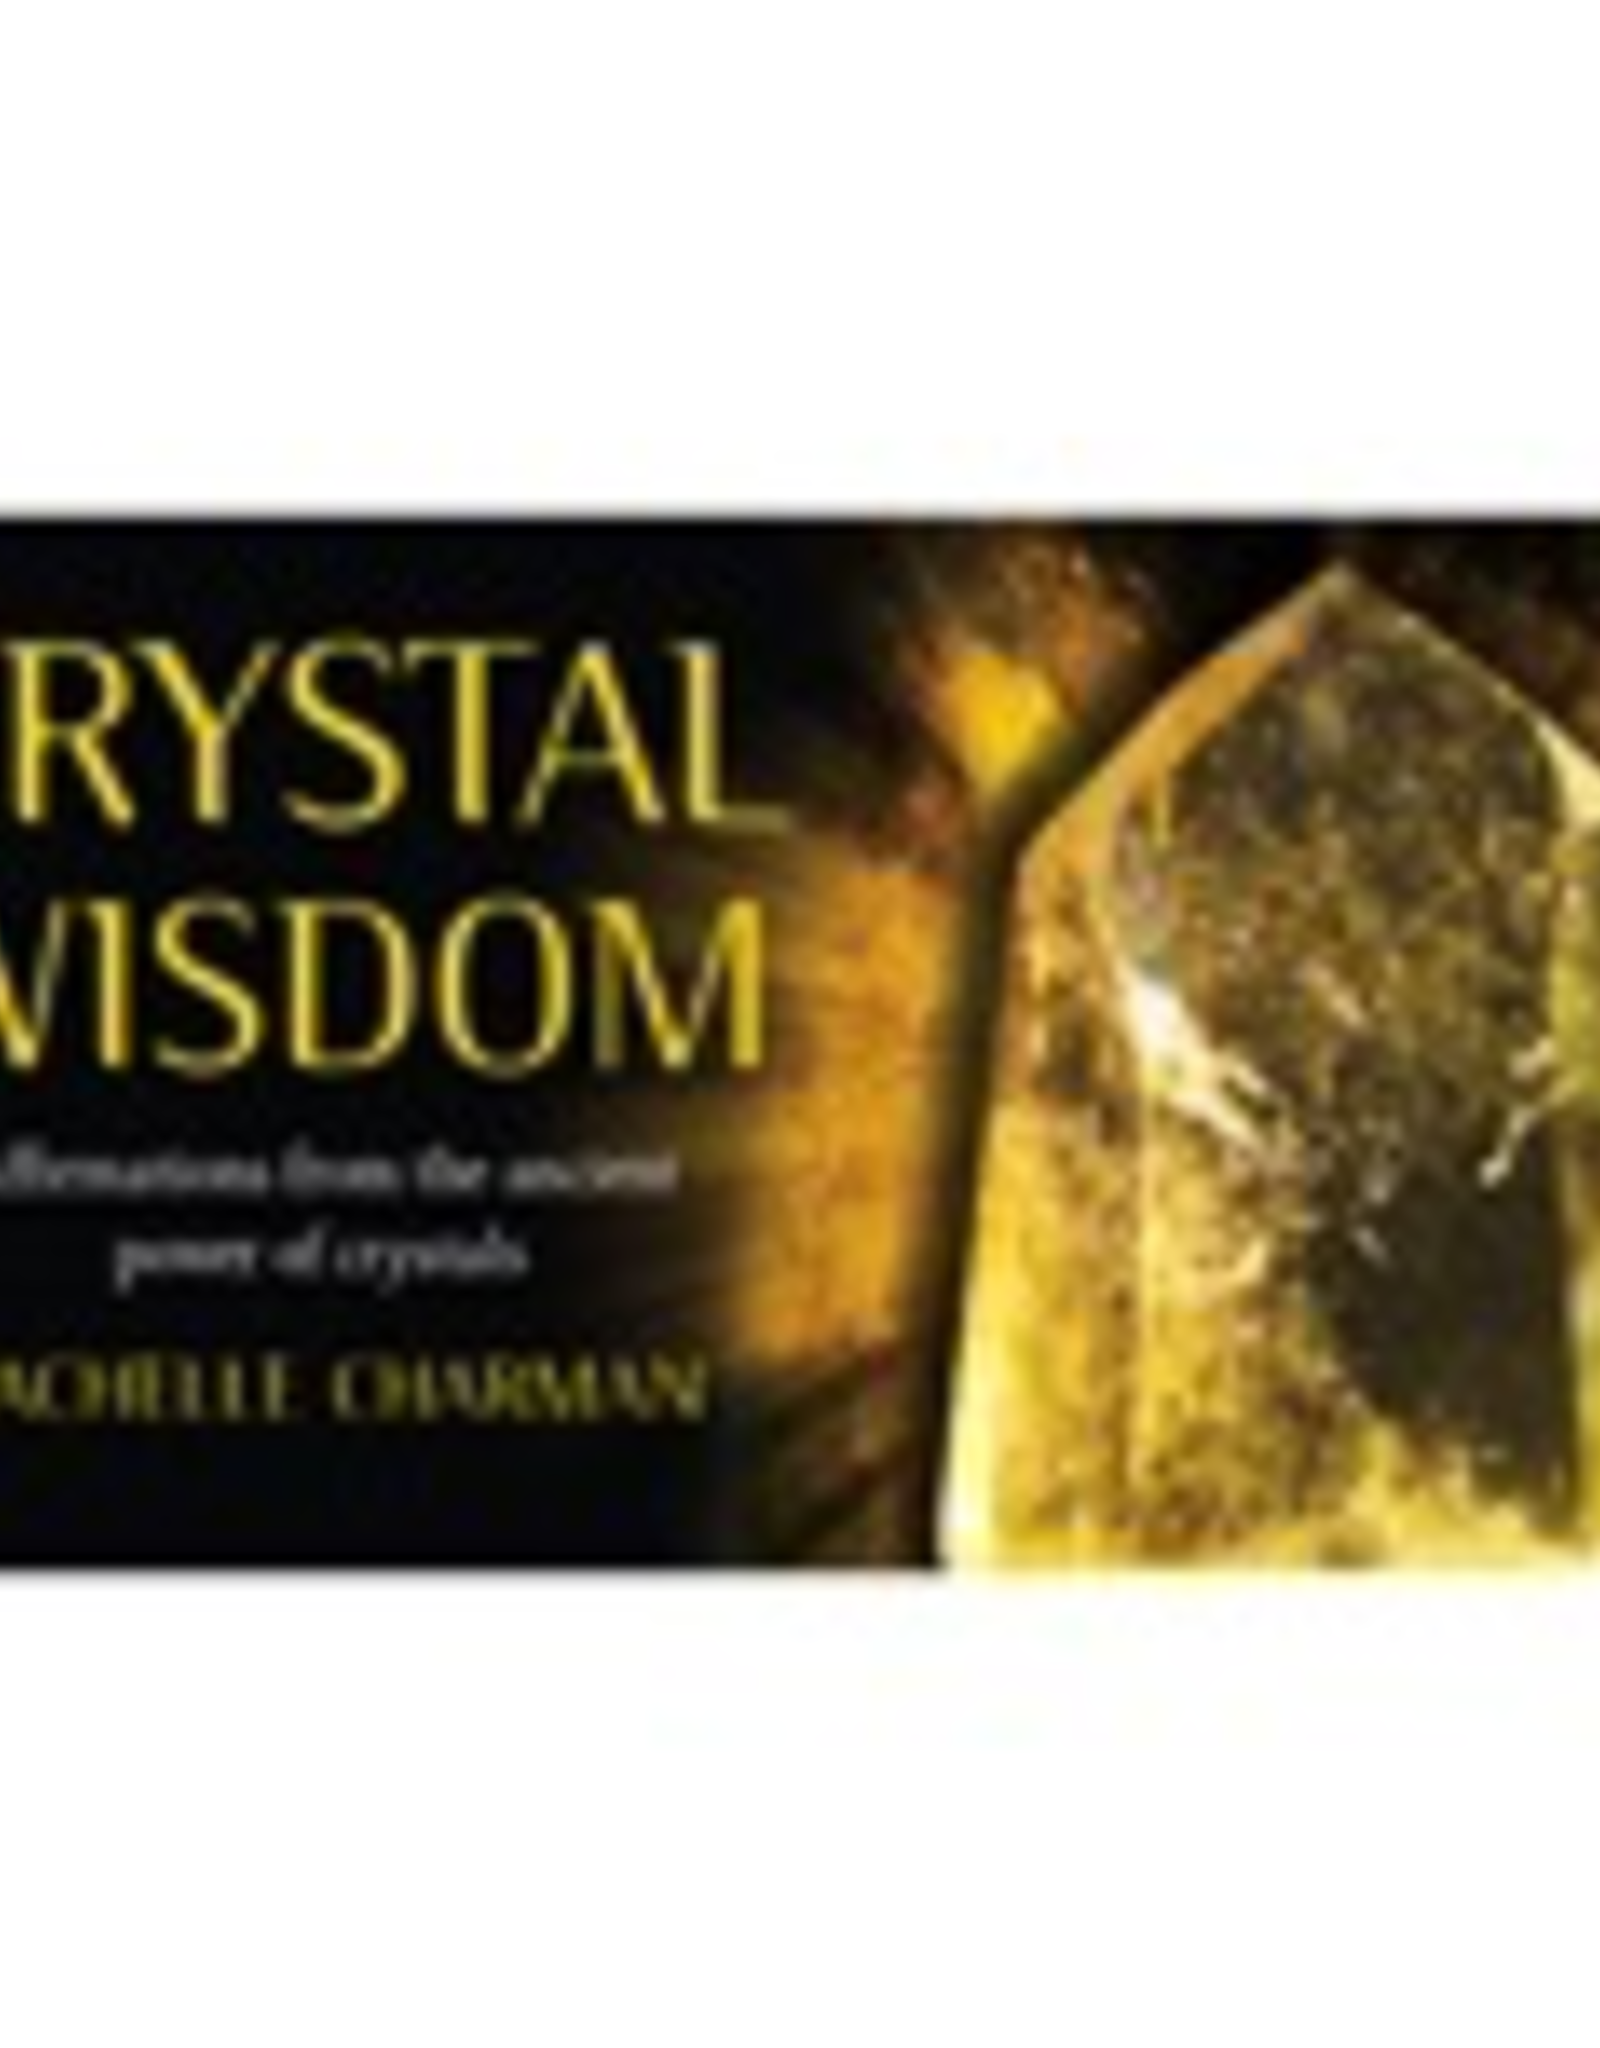 Crystal Wisdom Inspiration Oracle Deck